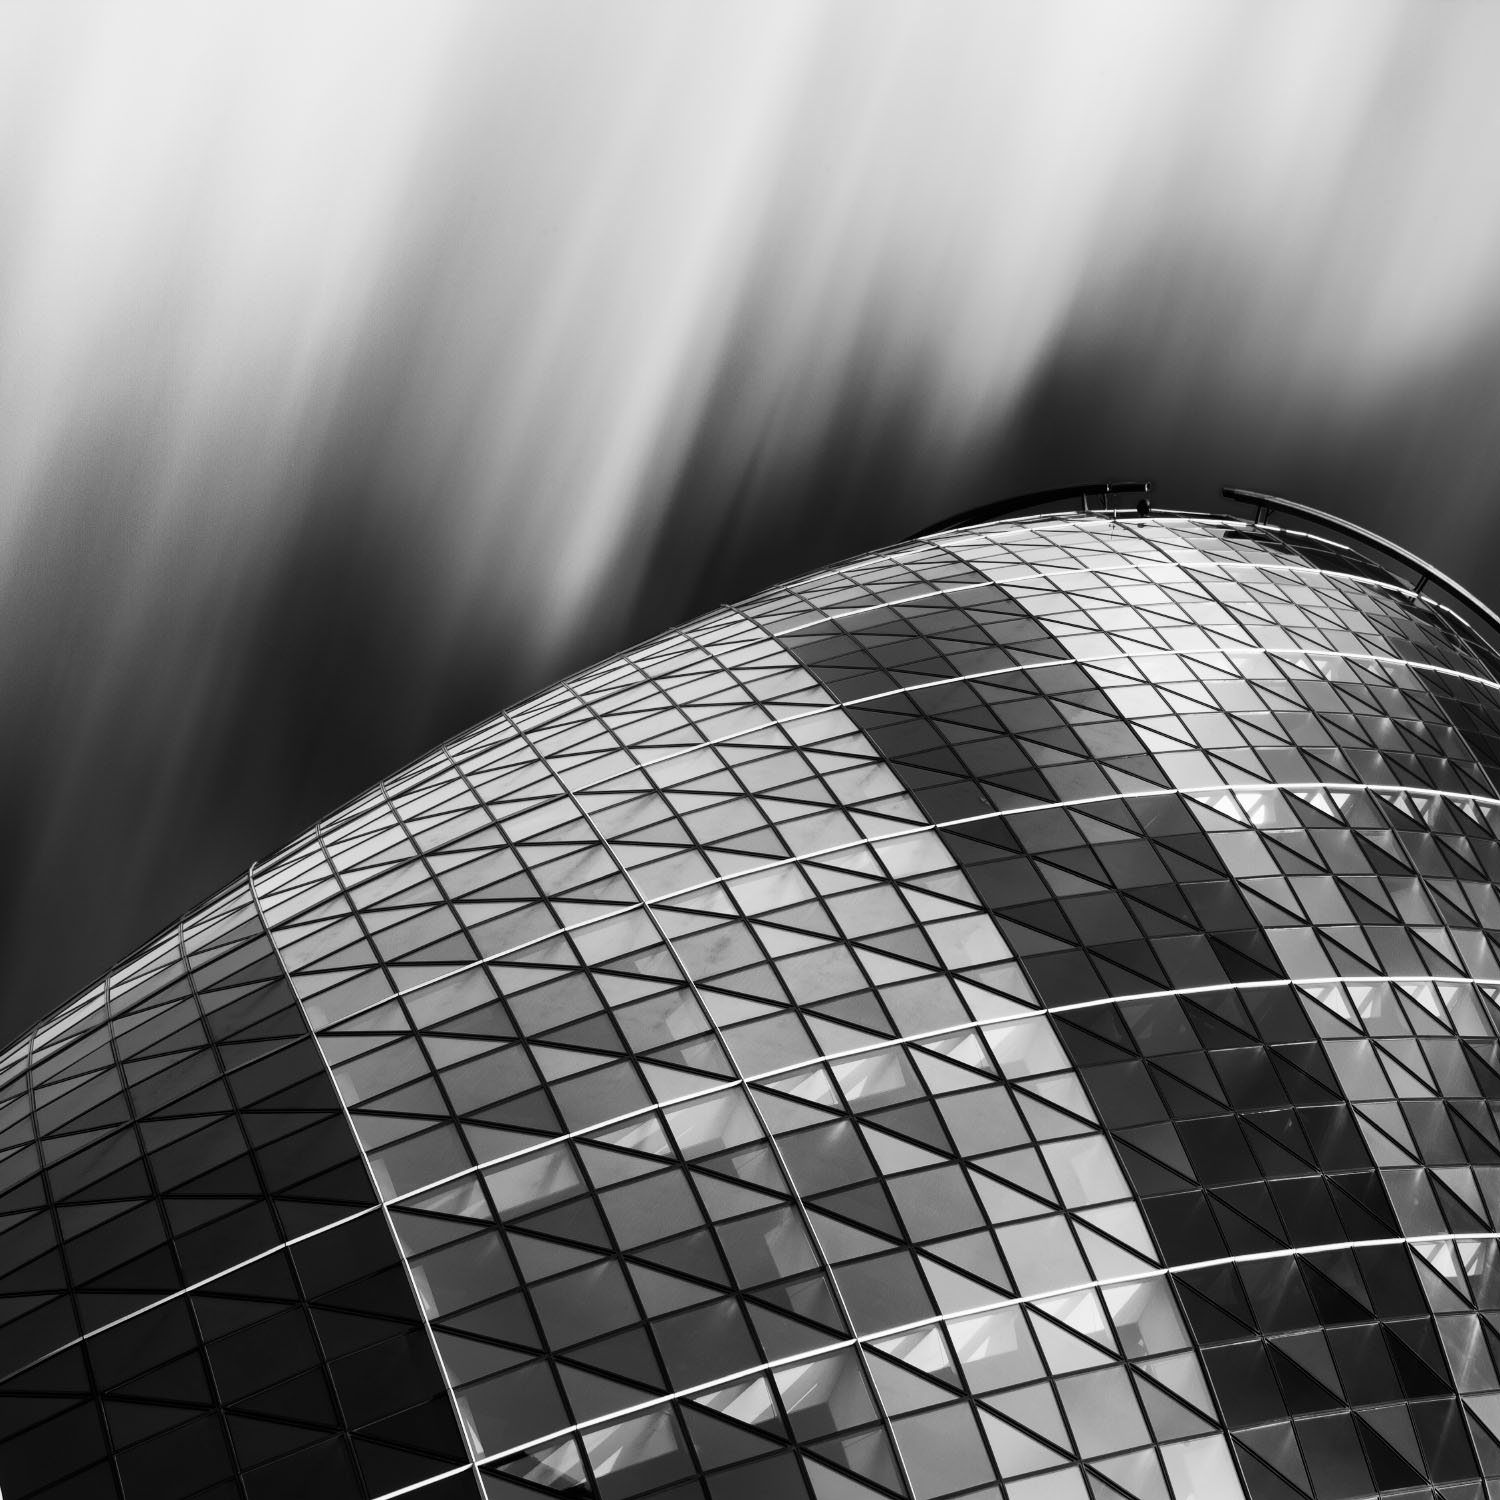 30 St Mary Axe, better known as the Gherkin, in Central London.